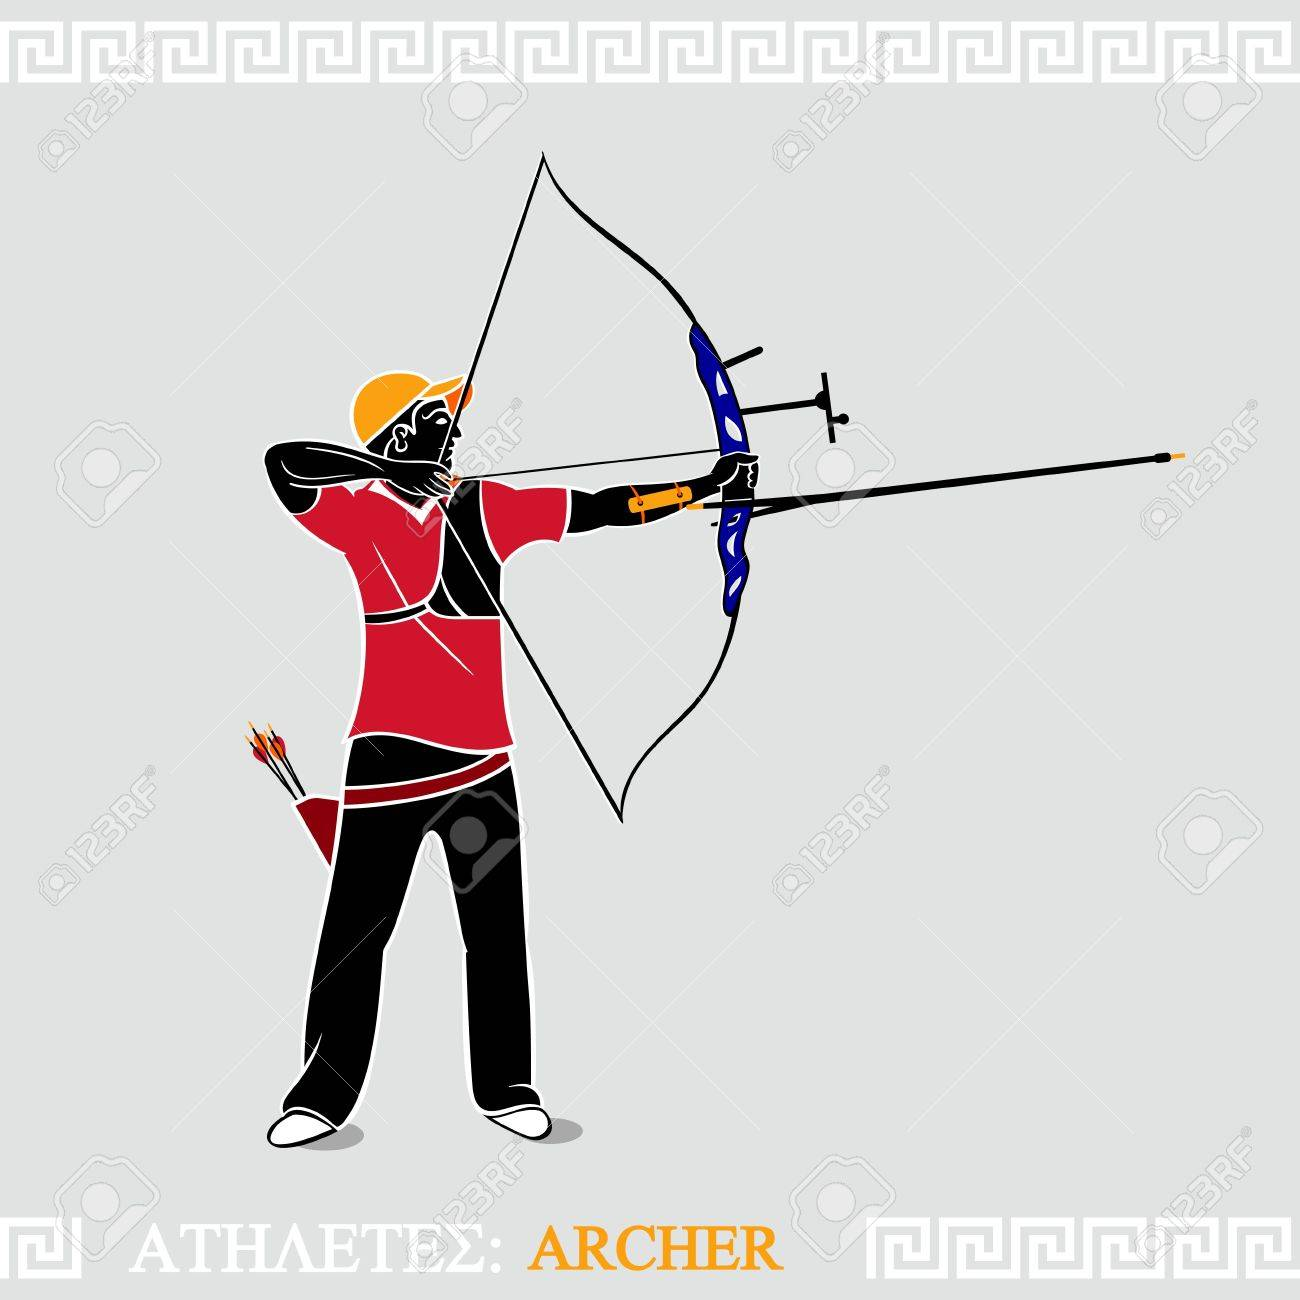 40c5df33e Greek art stylized archer with modern recurve bow